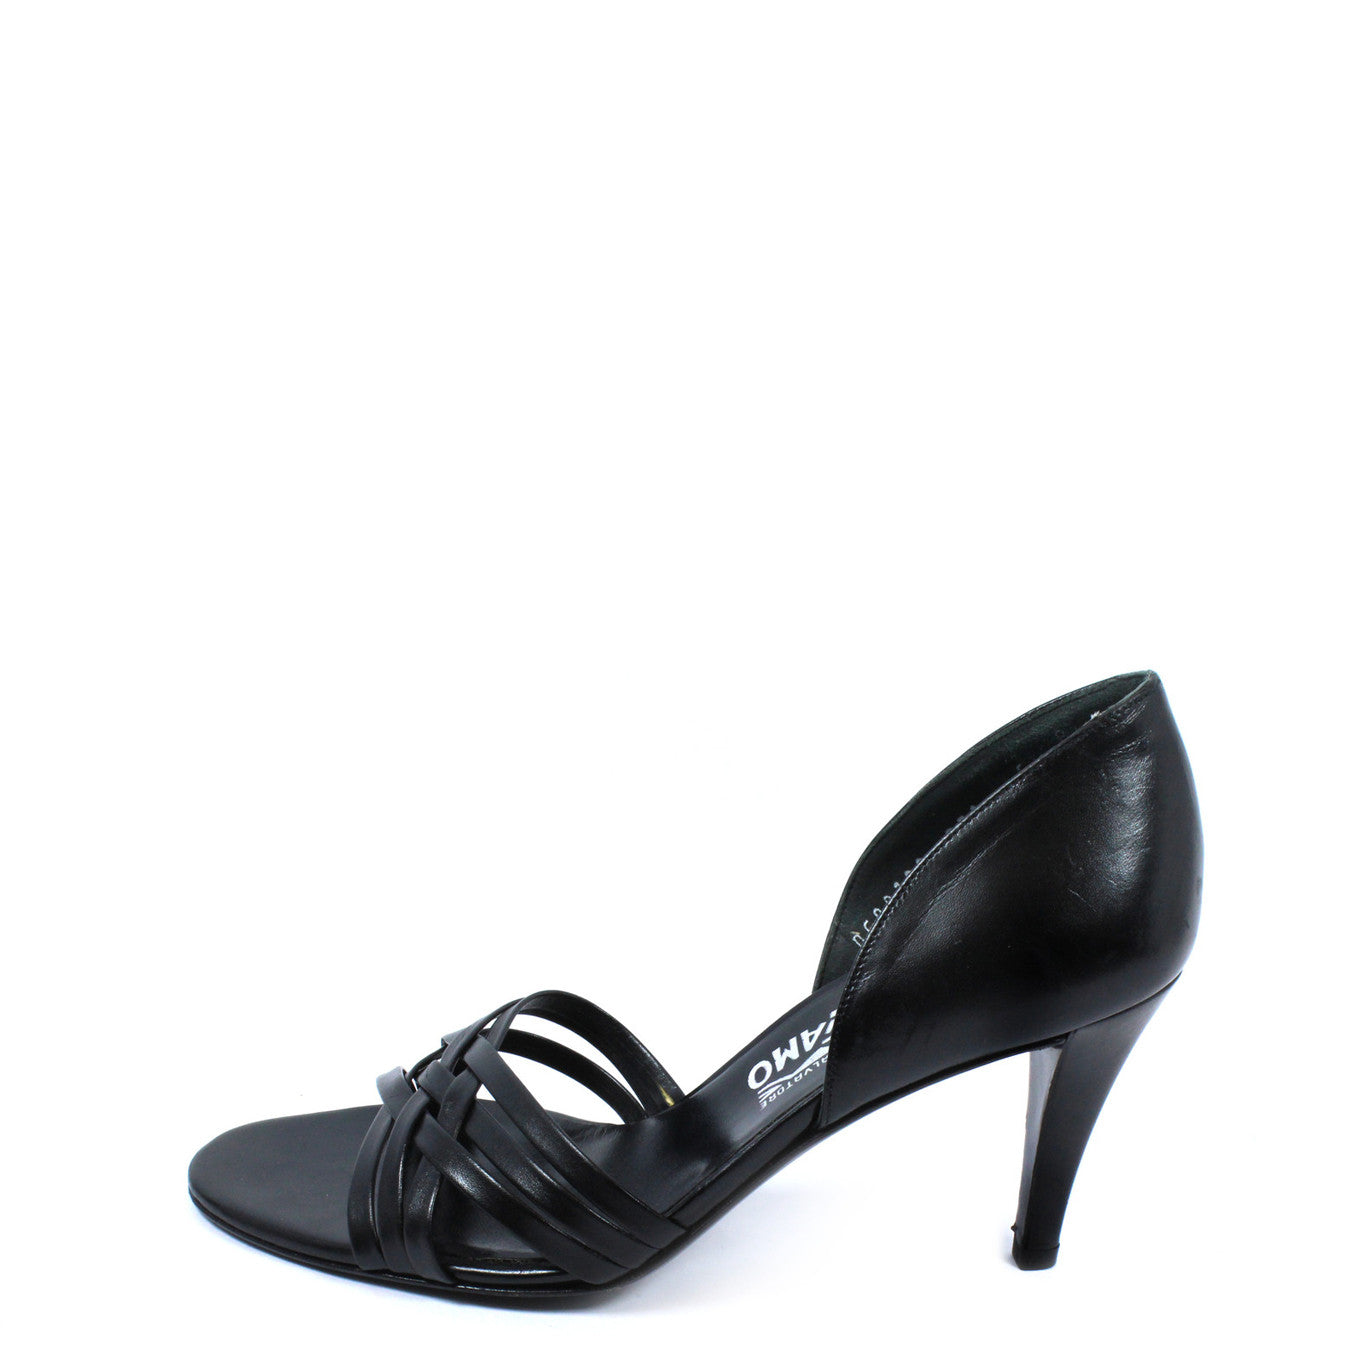 Salvatore Ferragamo Black Strappy Leather Heels (Size 6) - Encore Consignment - 10